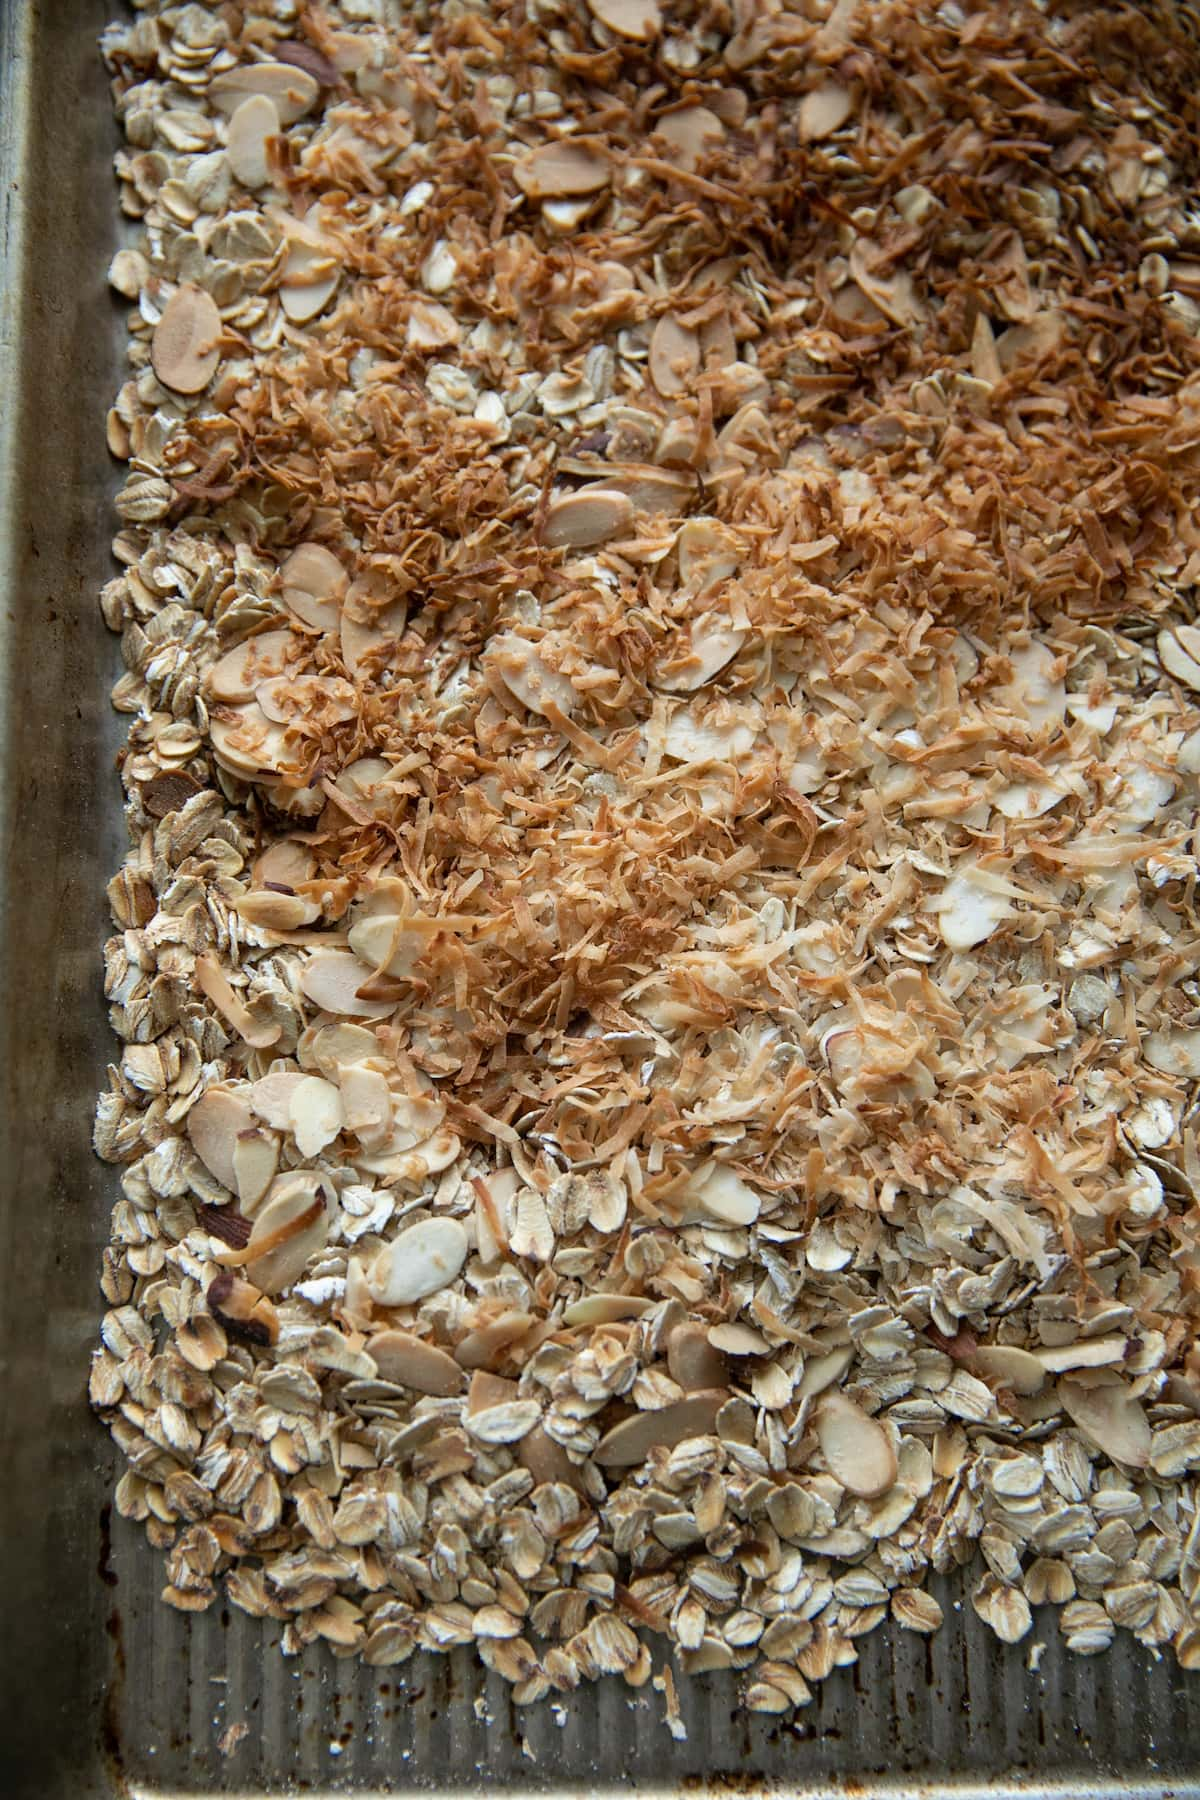 toasted coconut on top of other granola ingredients